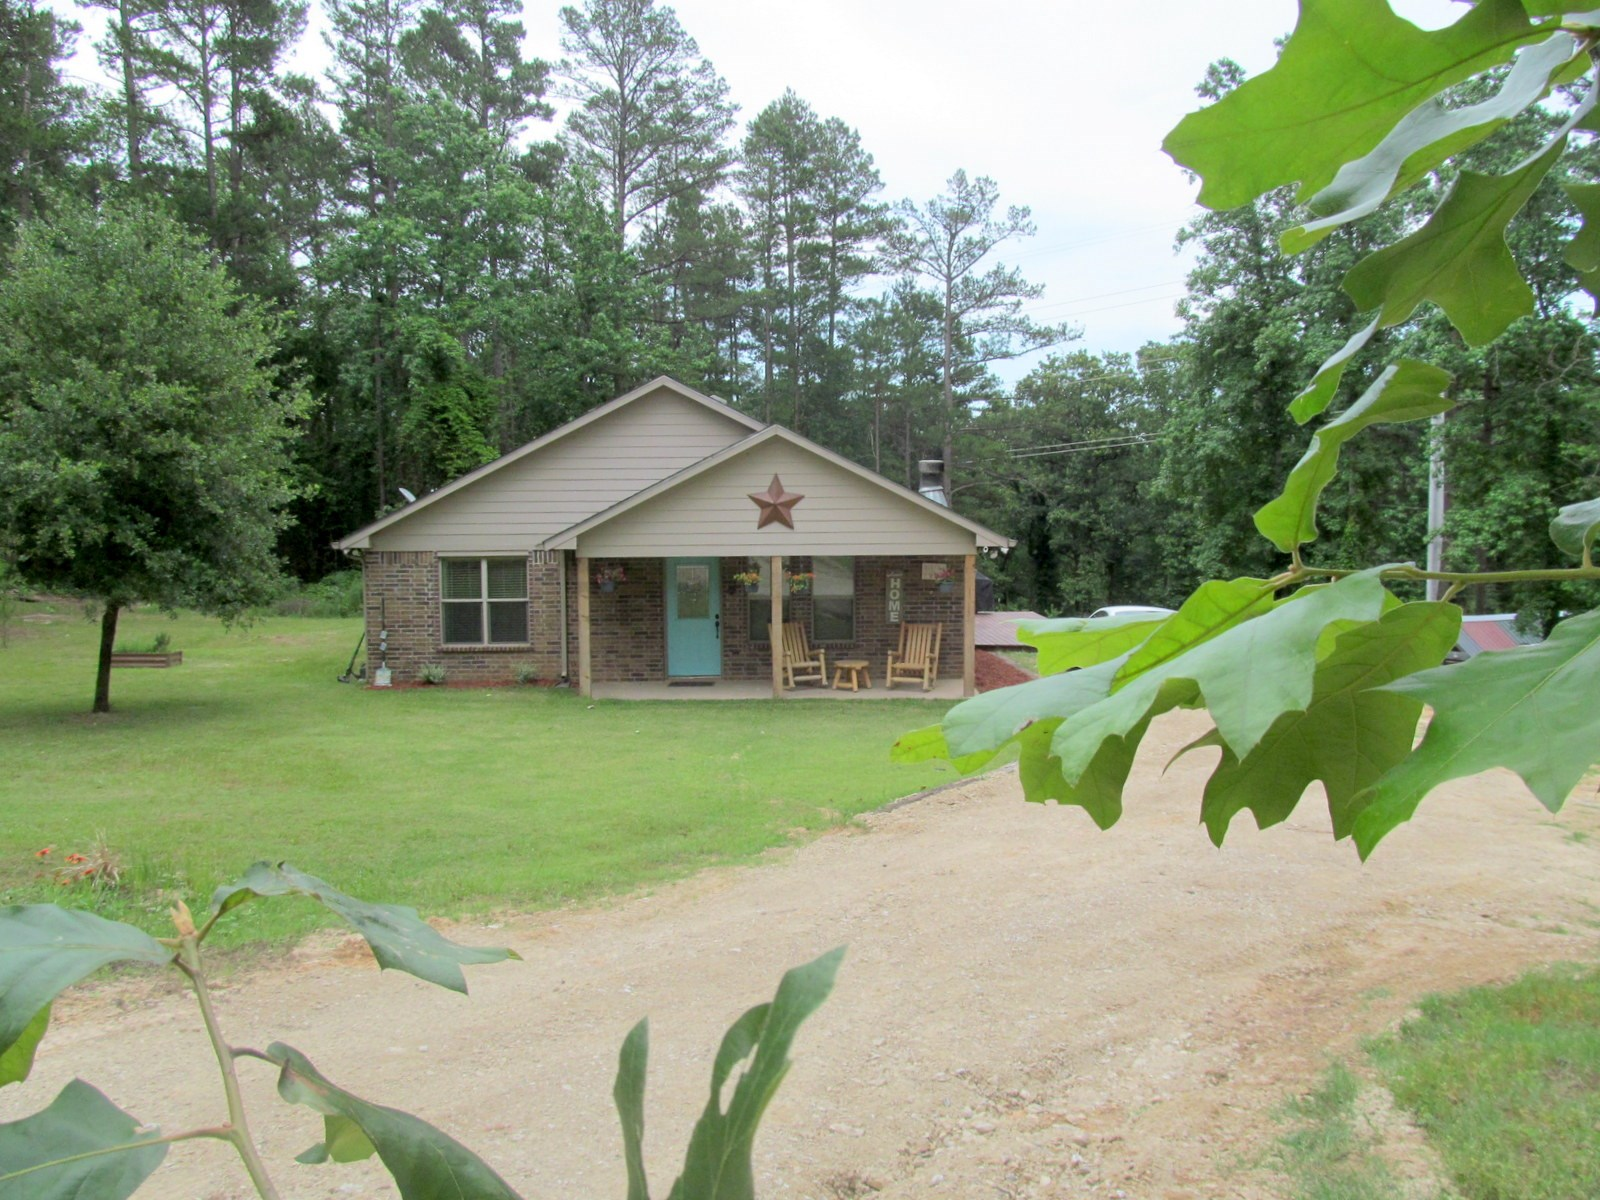 COUNTRY HOME WINNSBORO TEXAS 2 ACRES MOVE-IN READY!